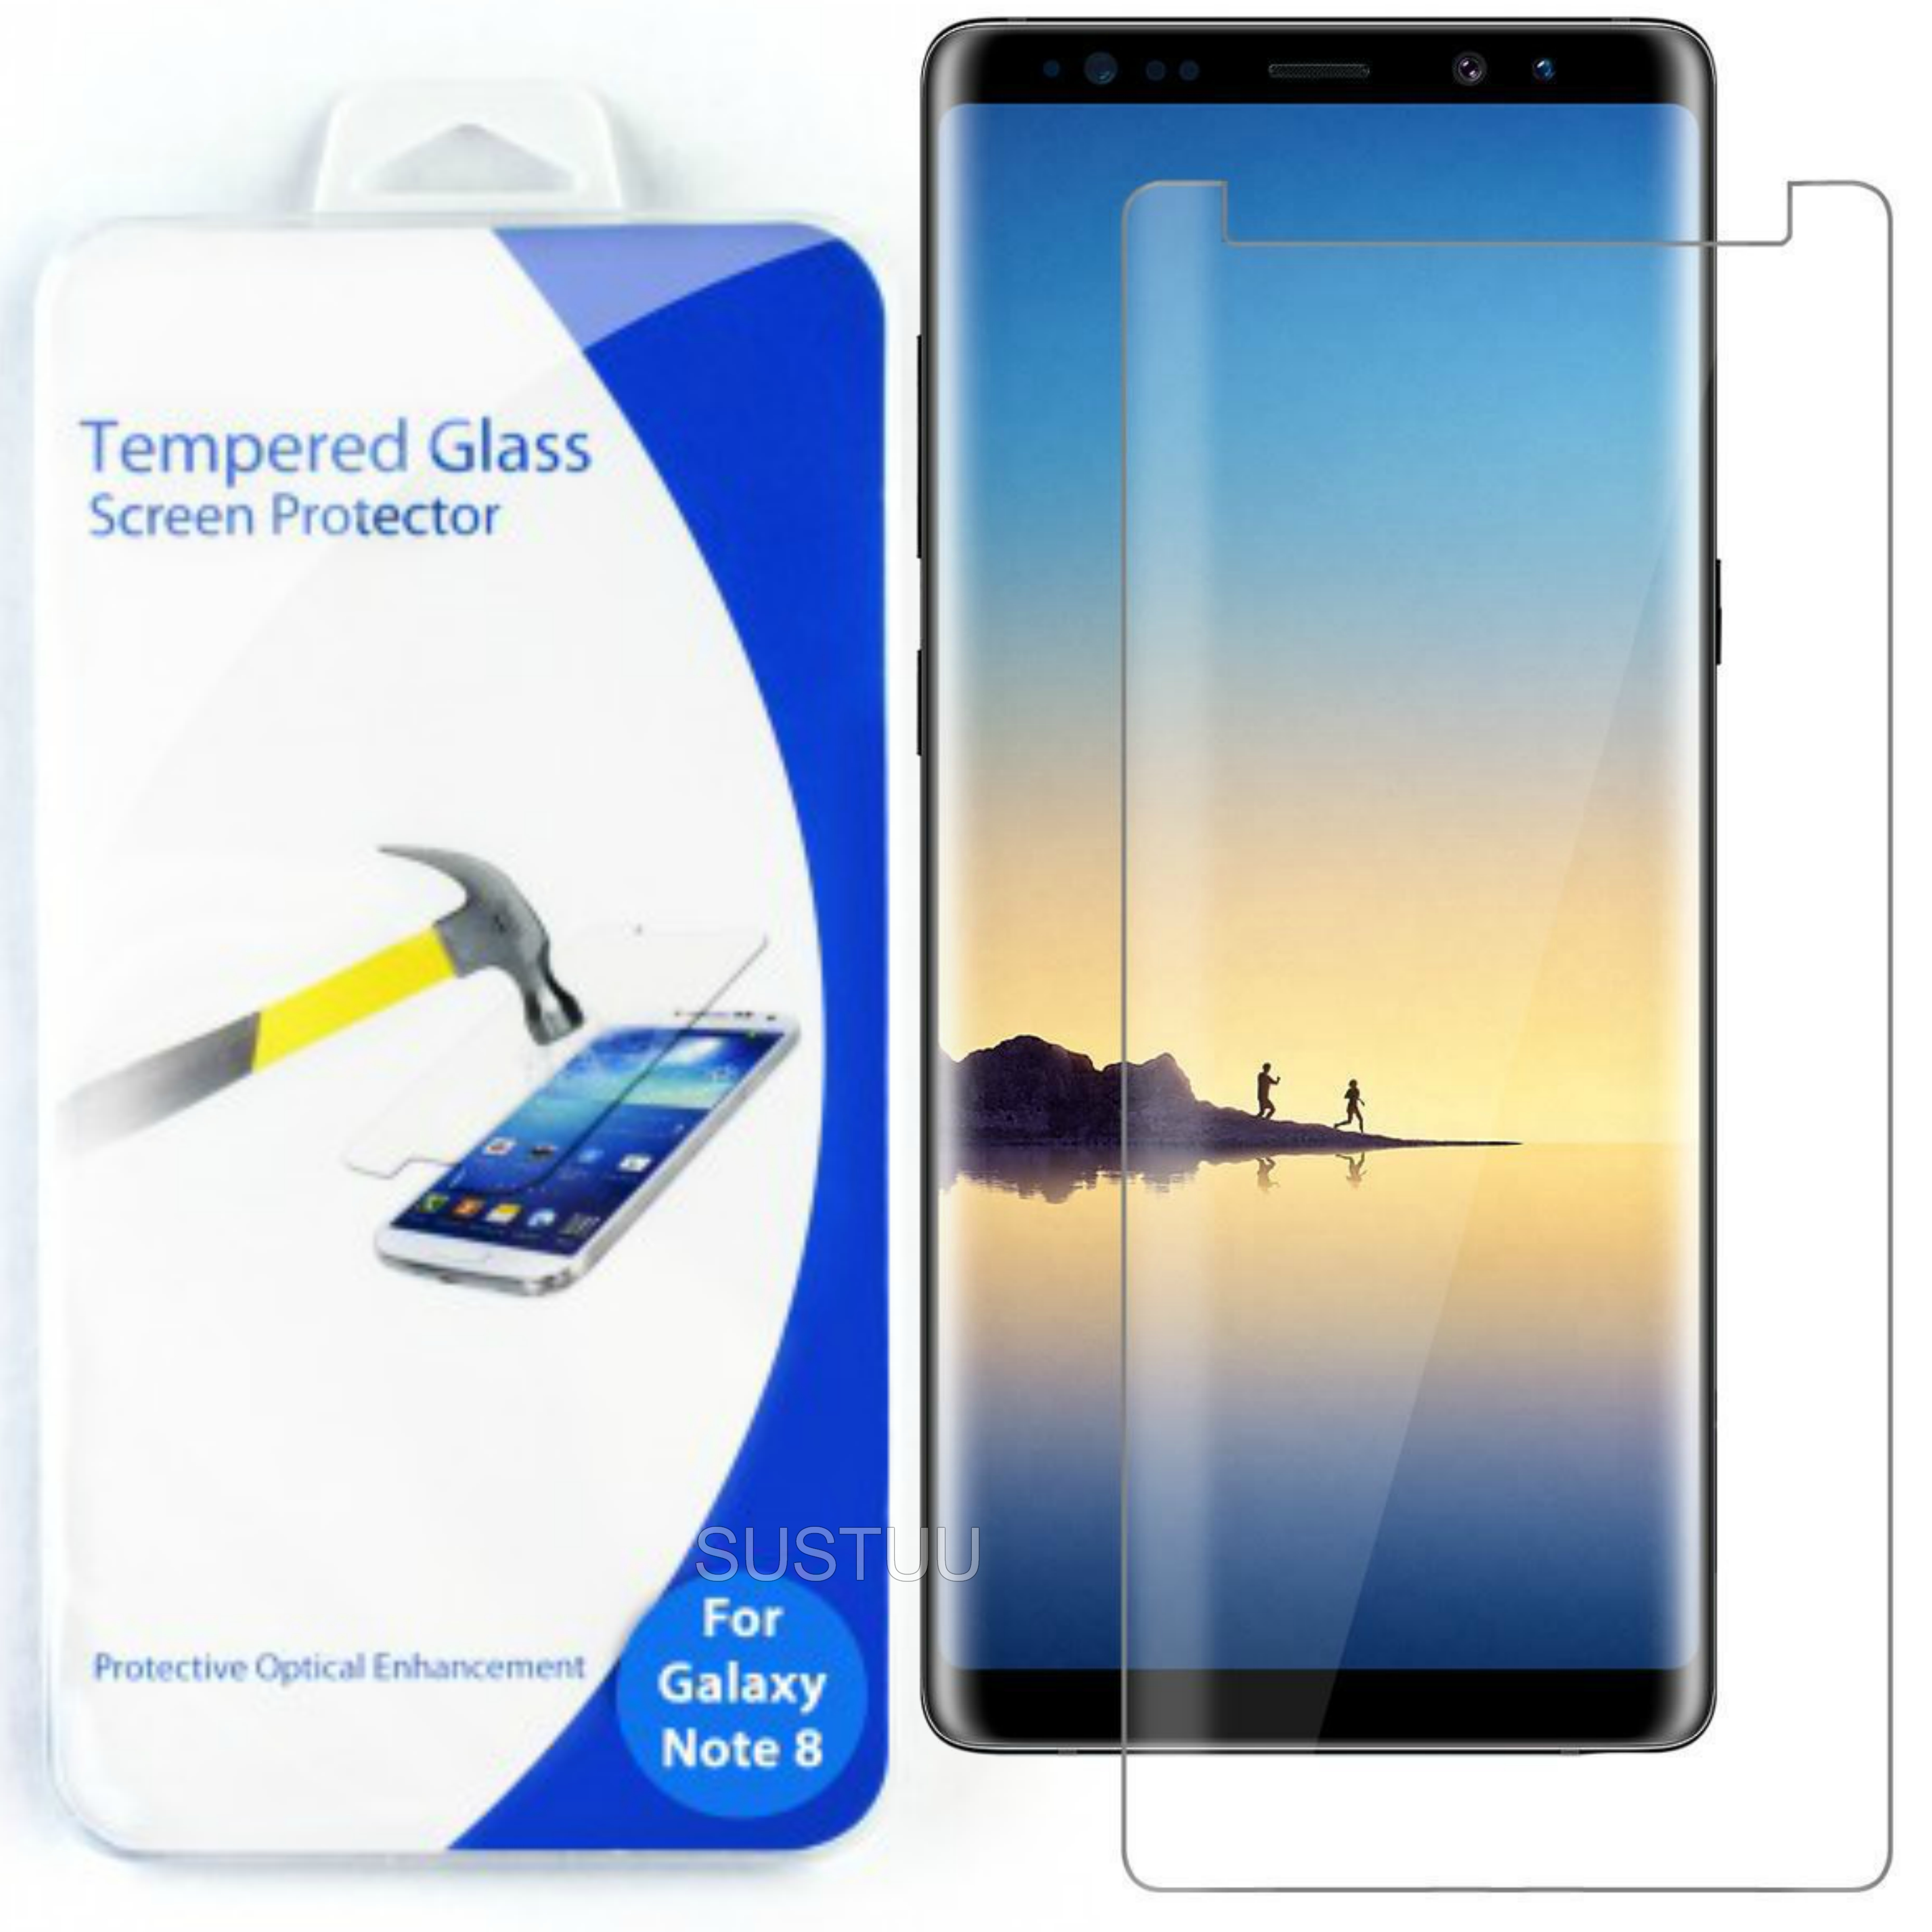 Tempered Glass Screen Protector | Clear Anti Scratch Guard | For Samsung Galaxy Note 8